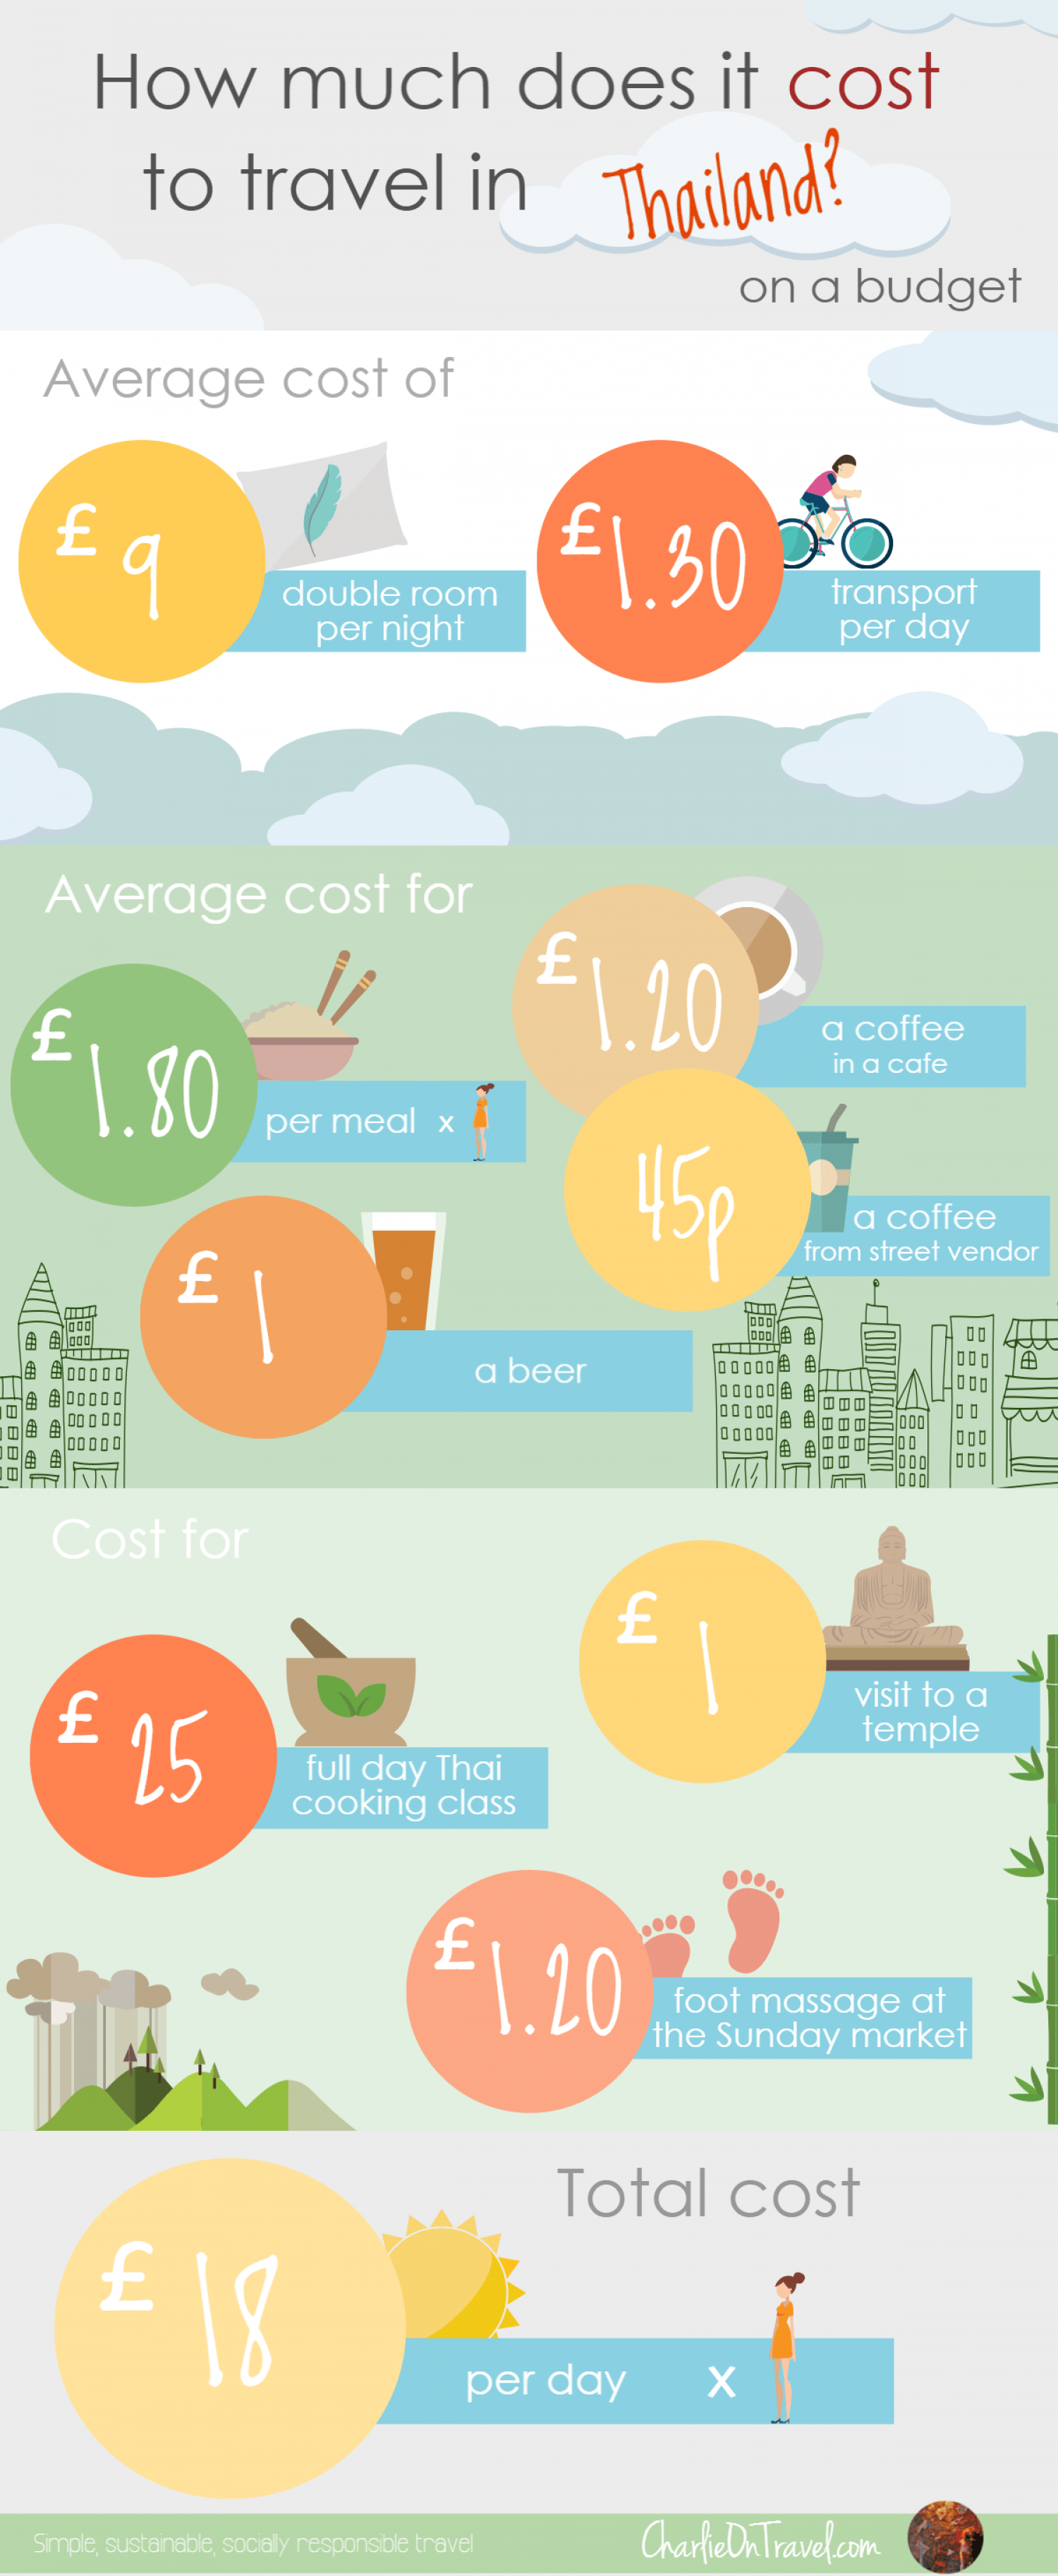 How Much Does it Cost to Travel Thailand on a Budget? Infographic